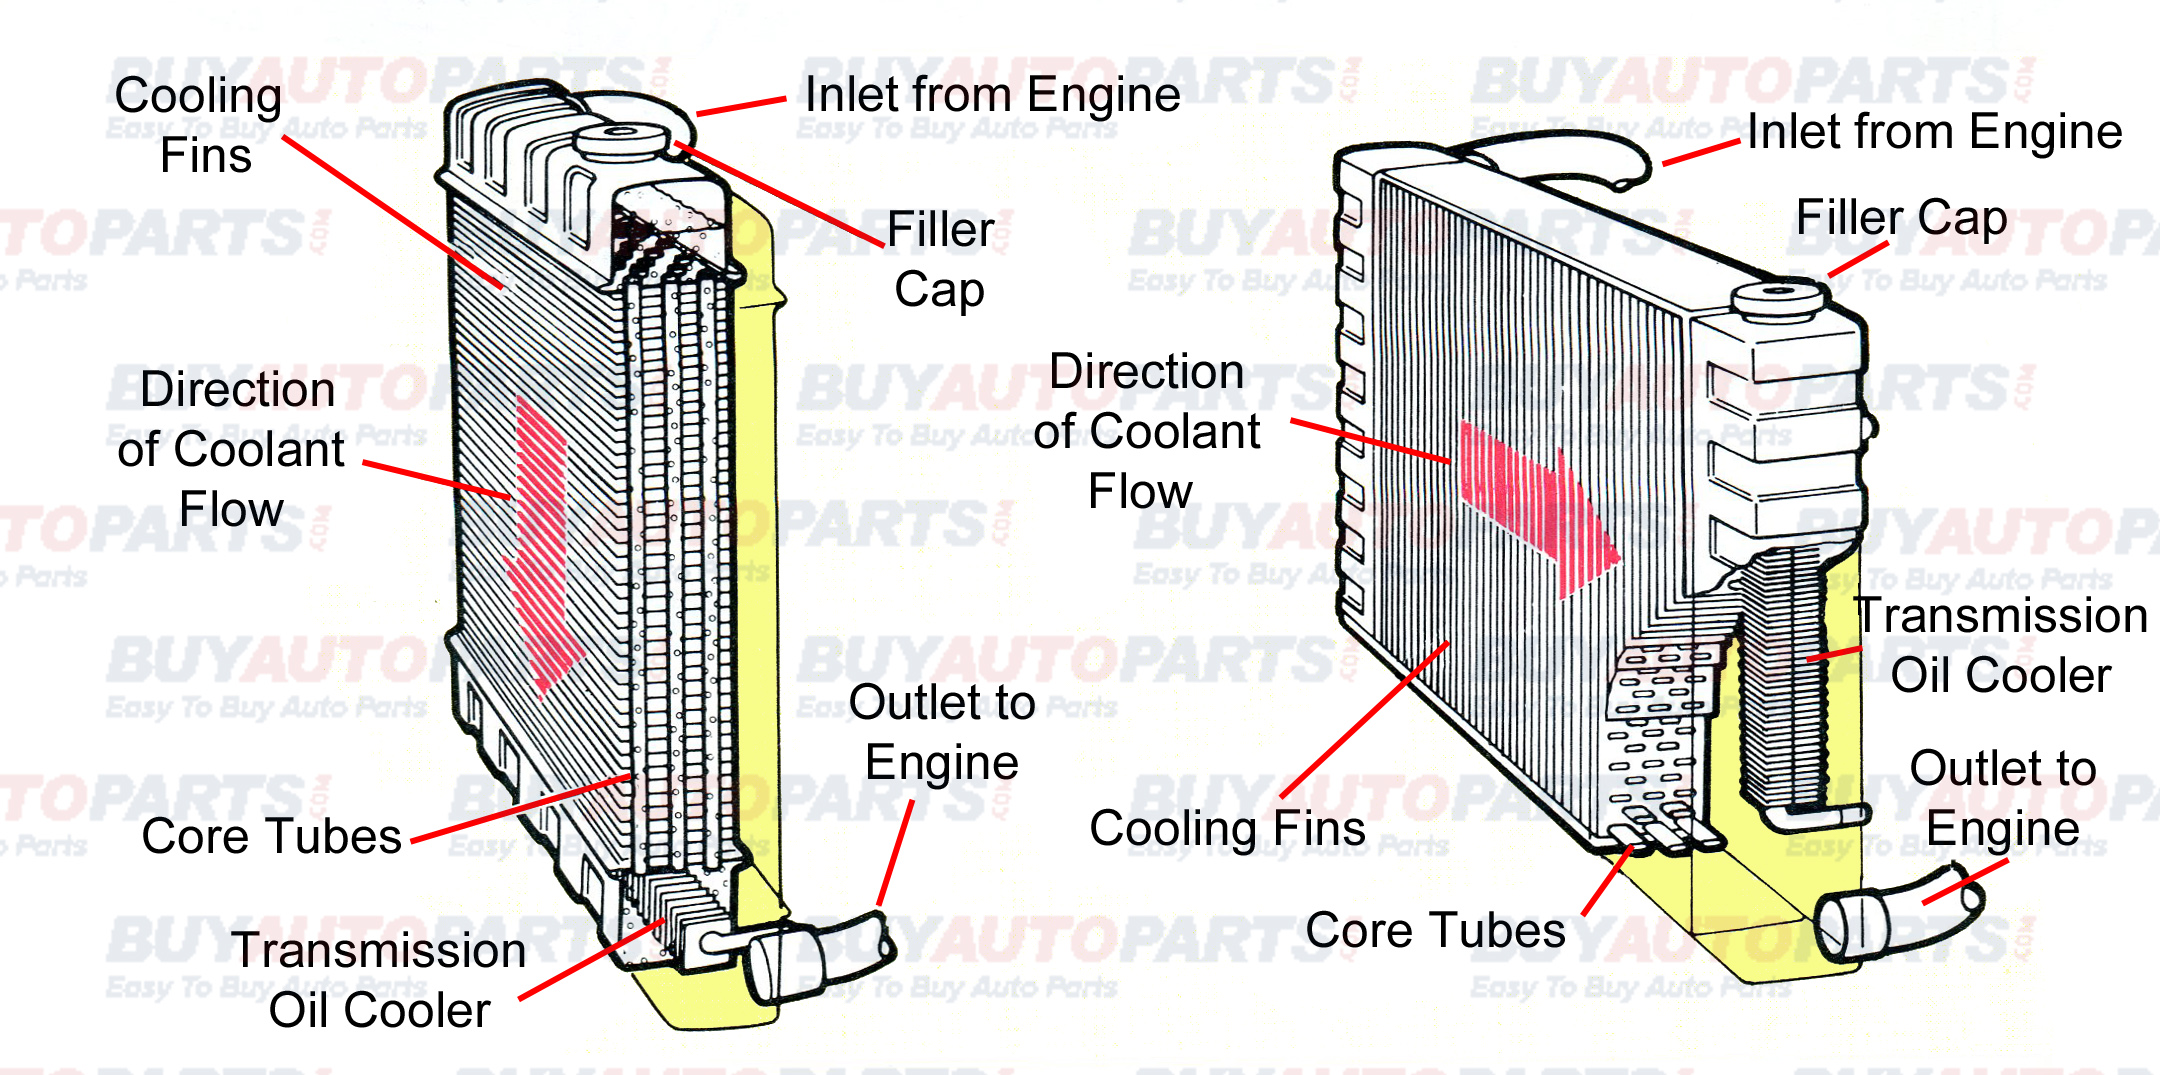 Radiator Break Down Diagrams